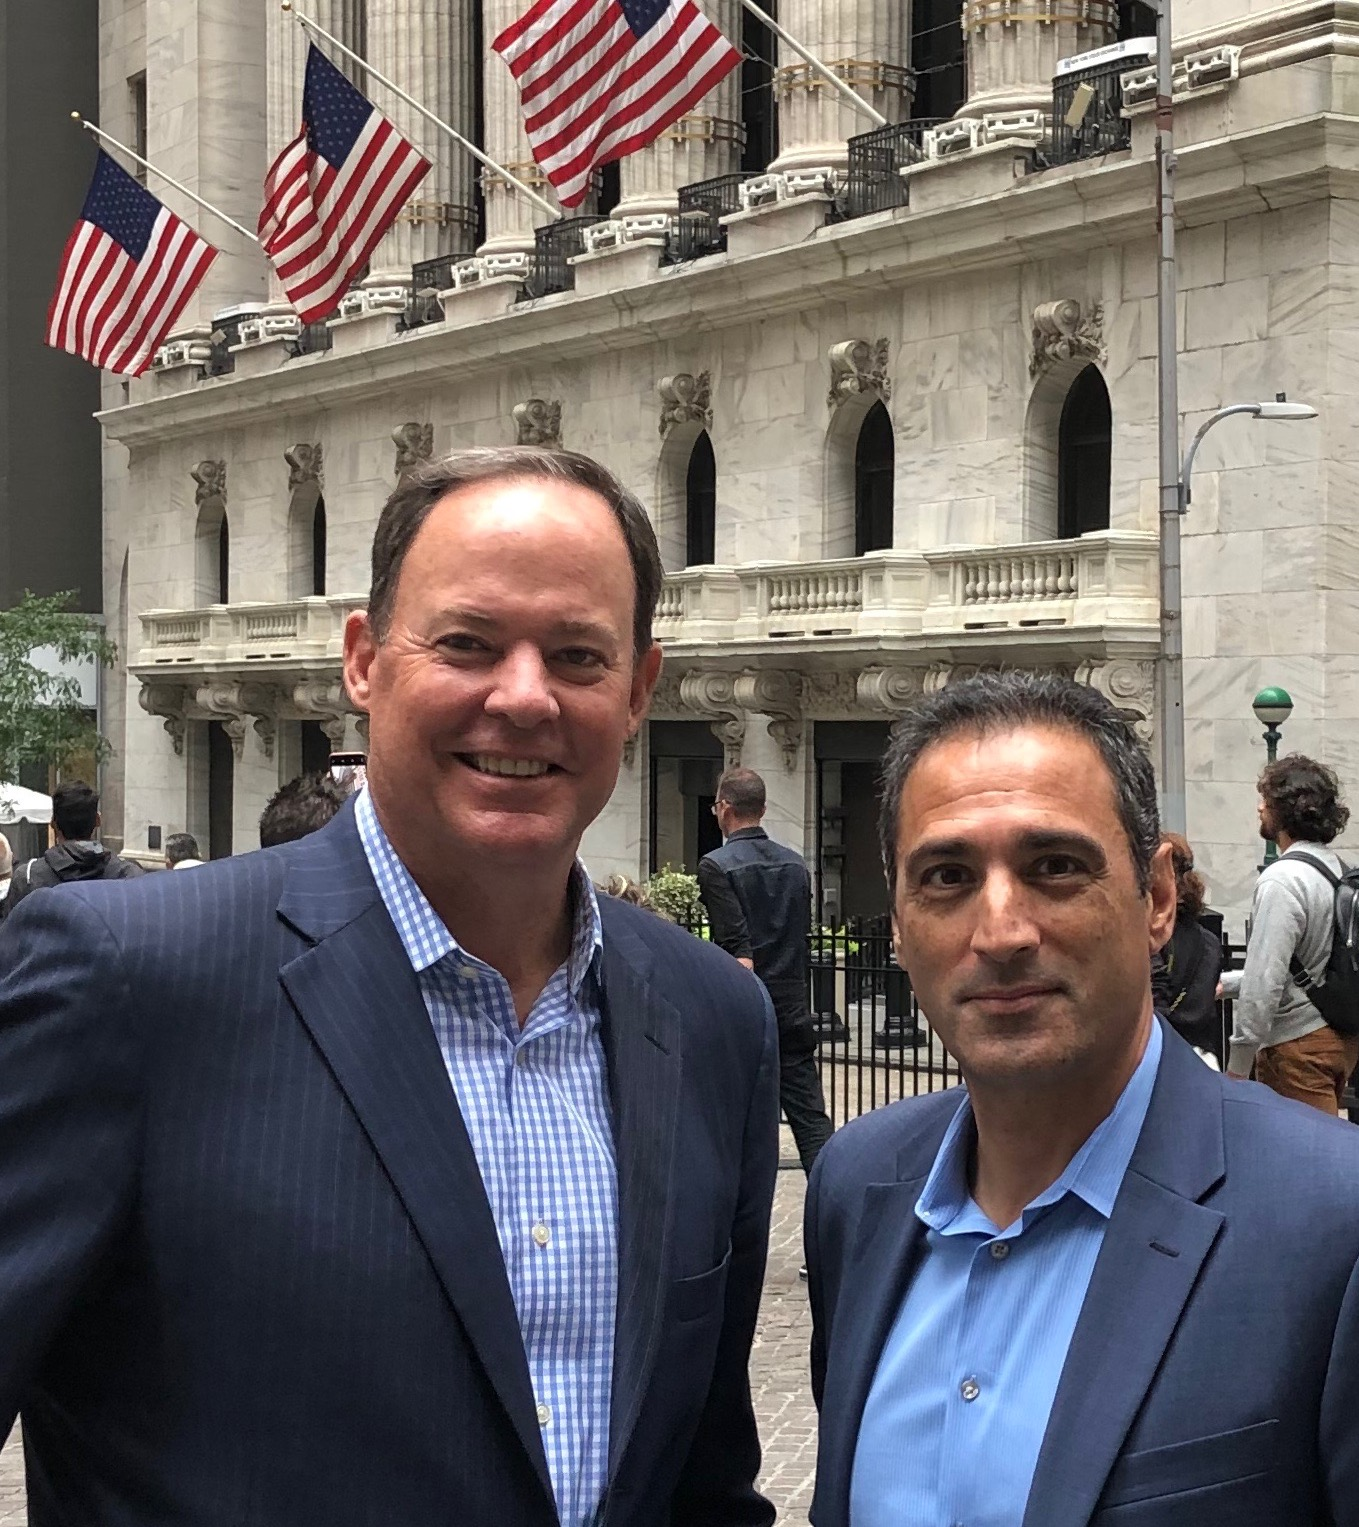 Arun and Craig at the New York Stock Exchange